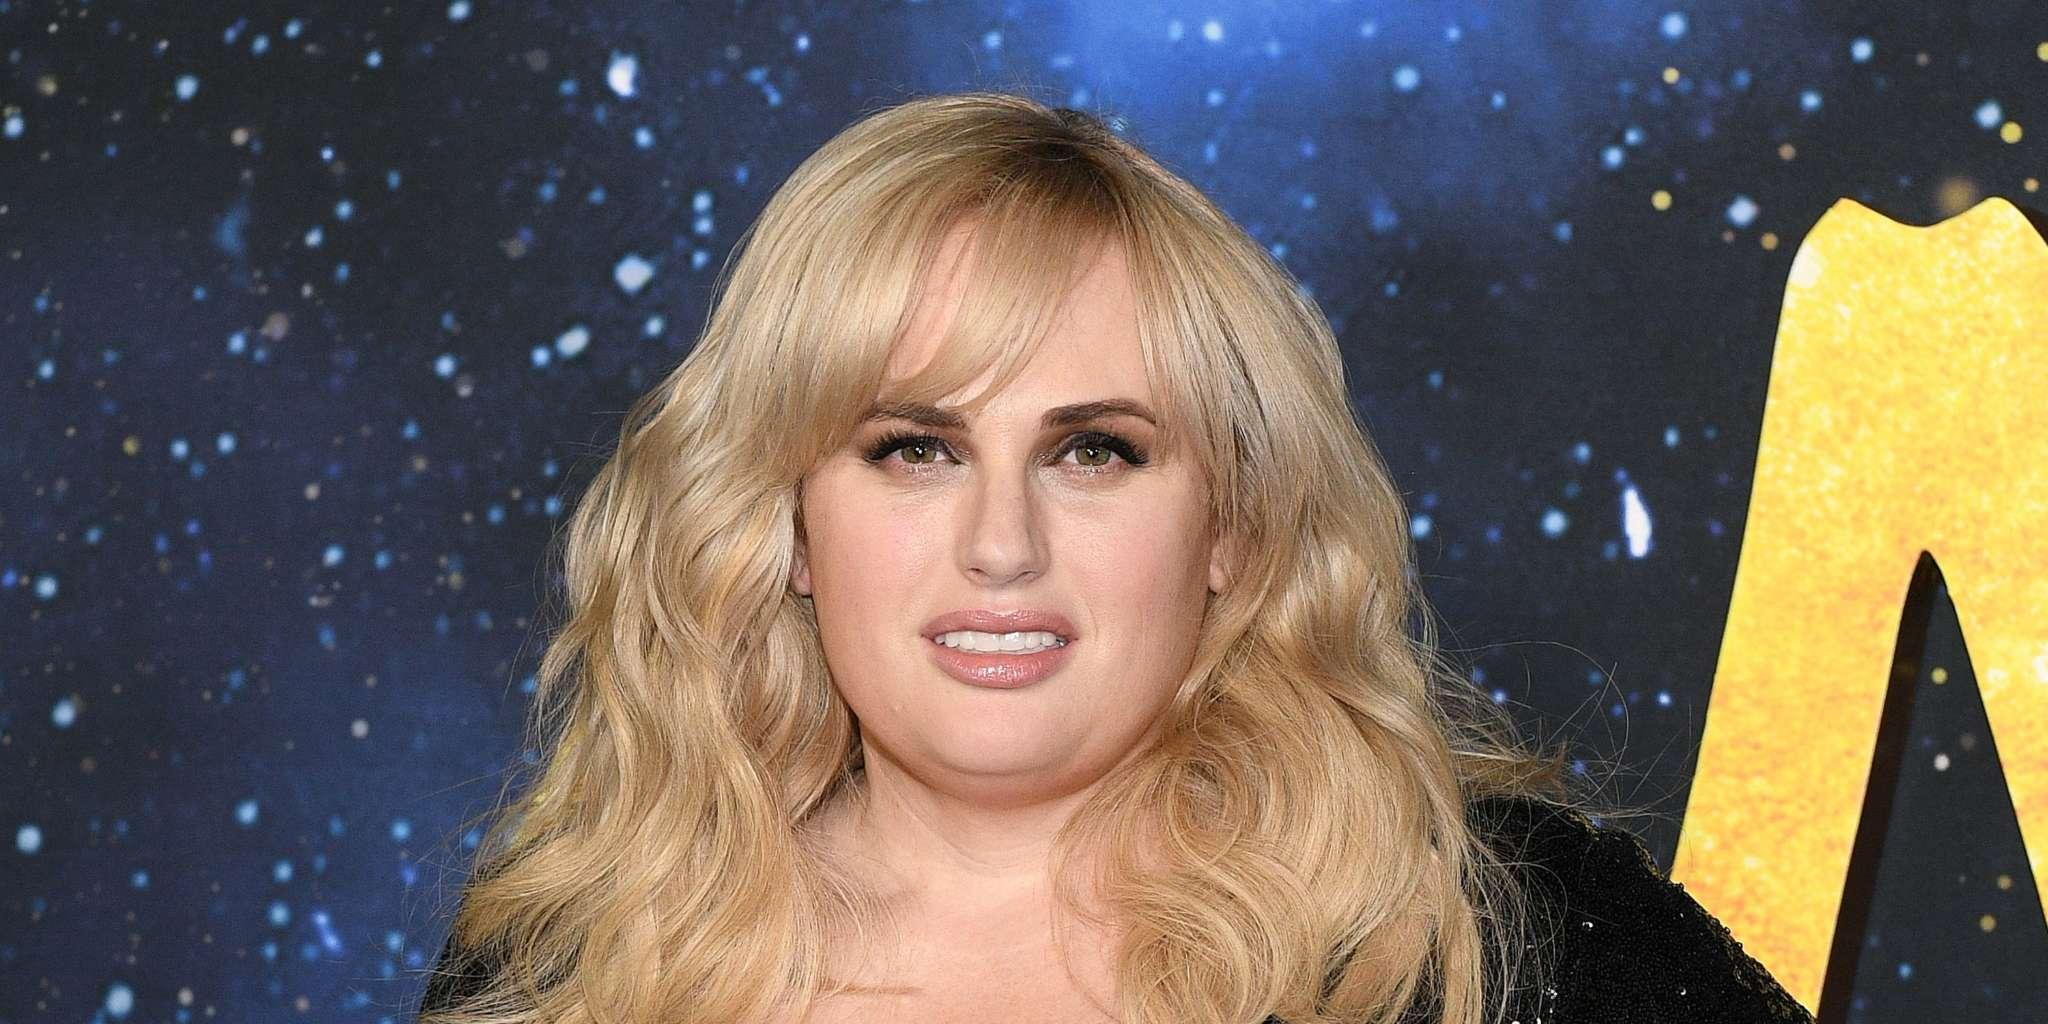 Rebel Wilson Looks Sultry And Fit In Elegant Blue Dress After Quarantine Weight Loss